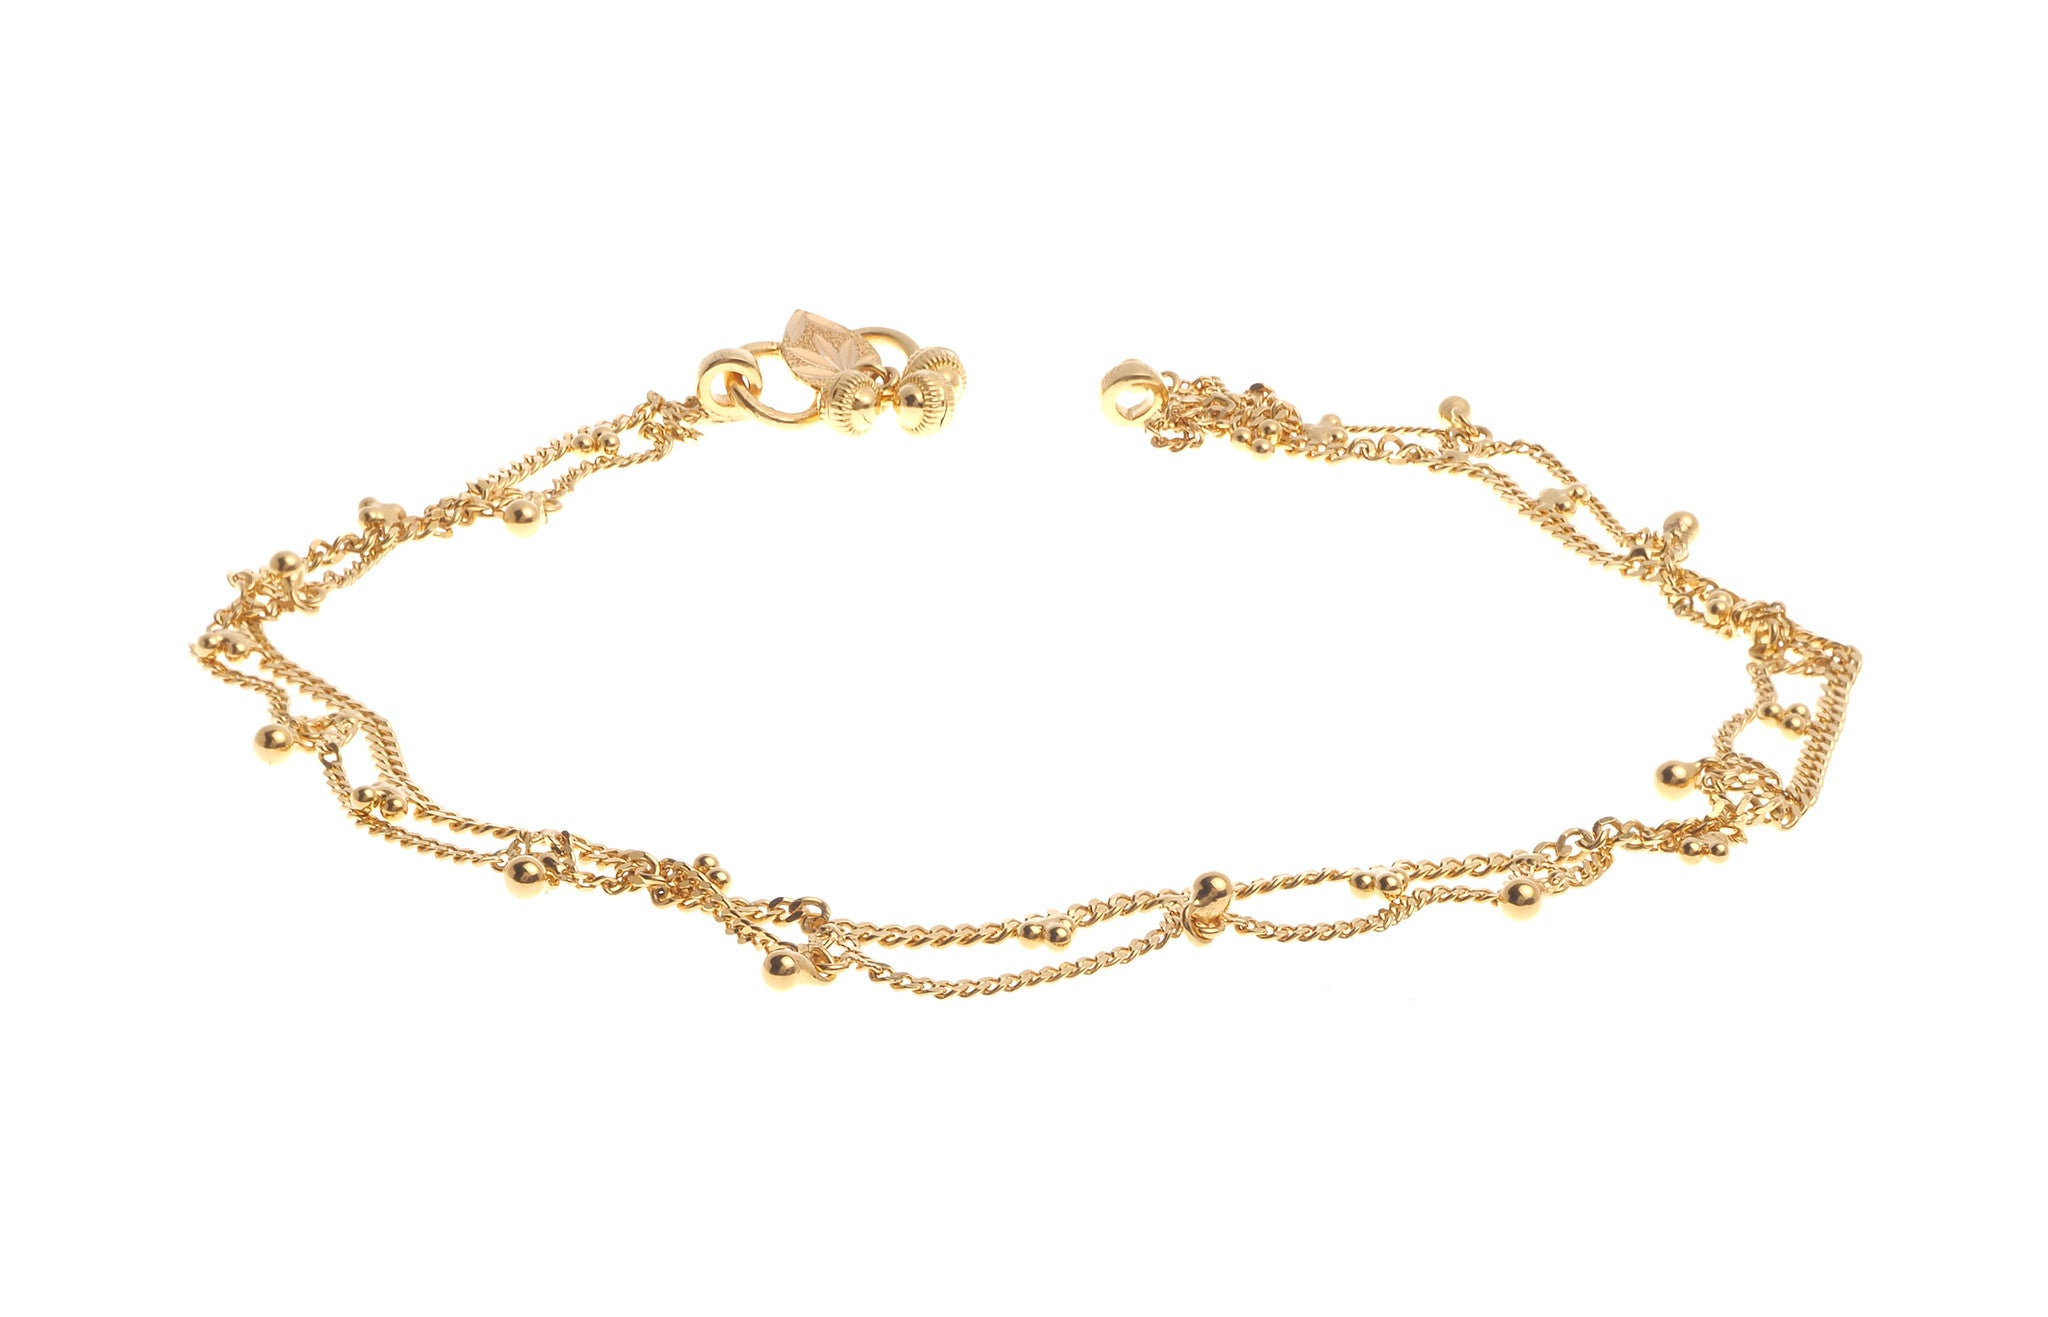 by chain bracelet jewels fox gold brfox anklet archives elle braided karat anklets product ankle category